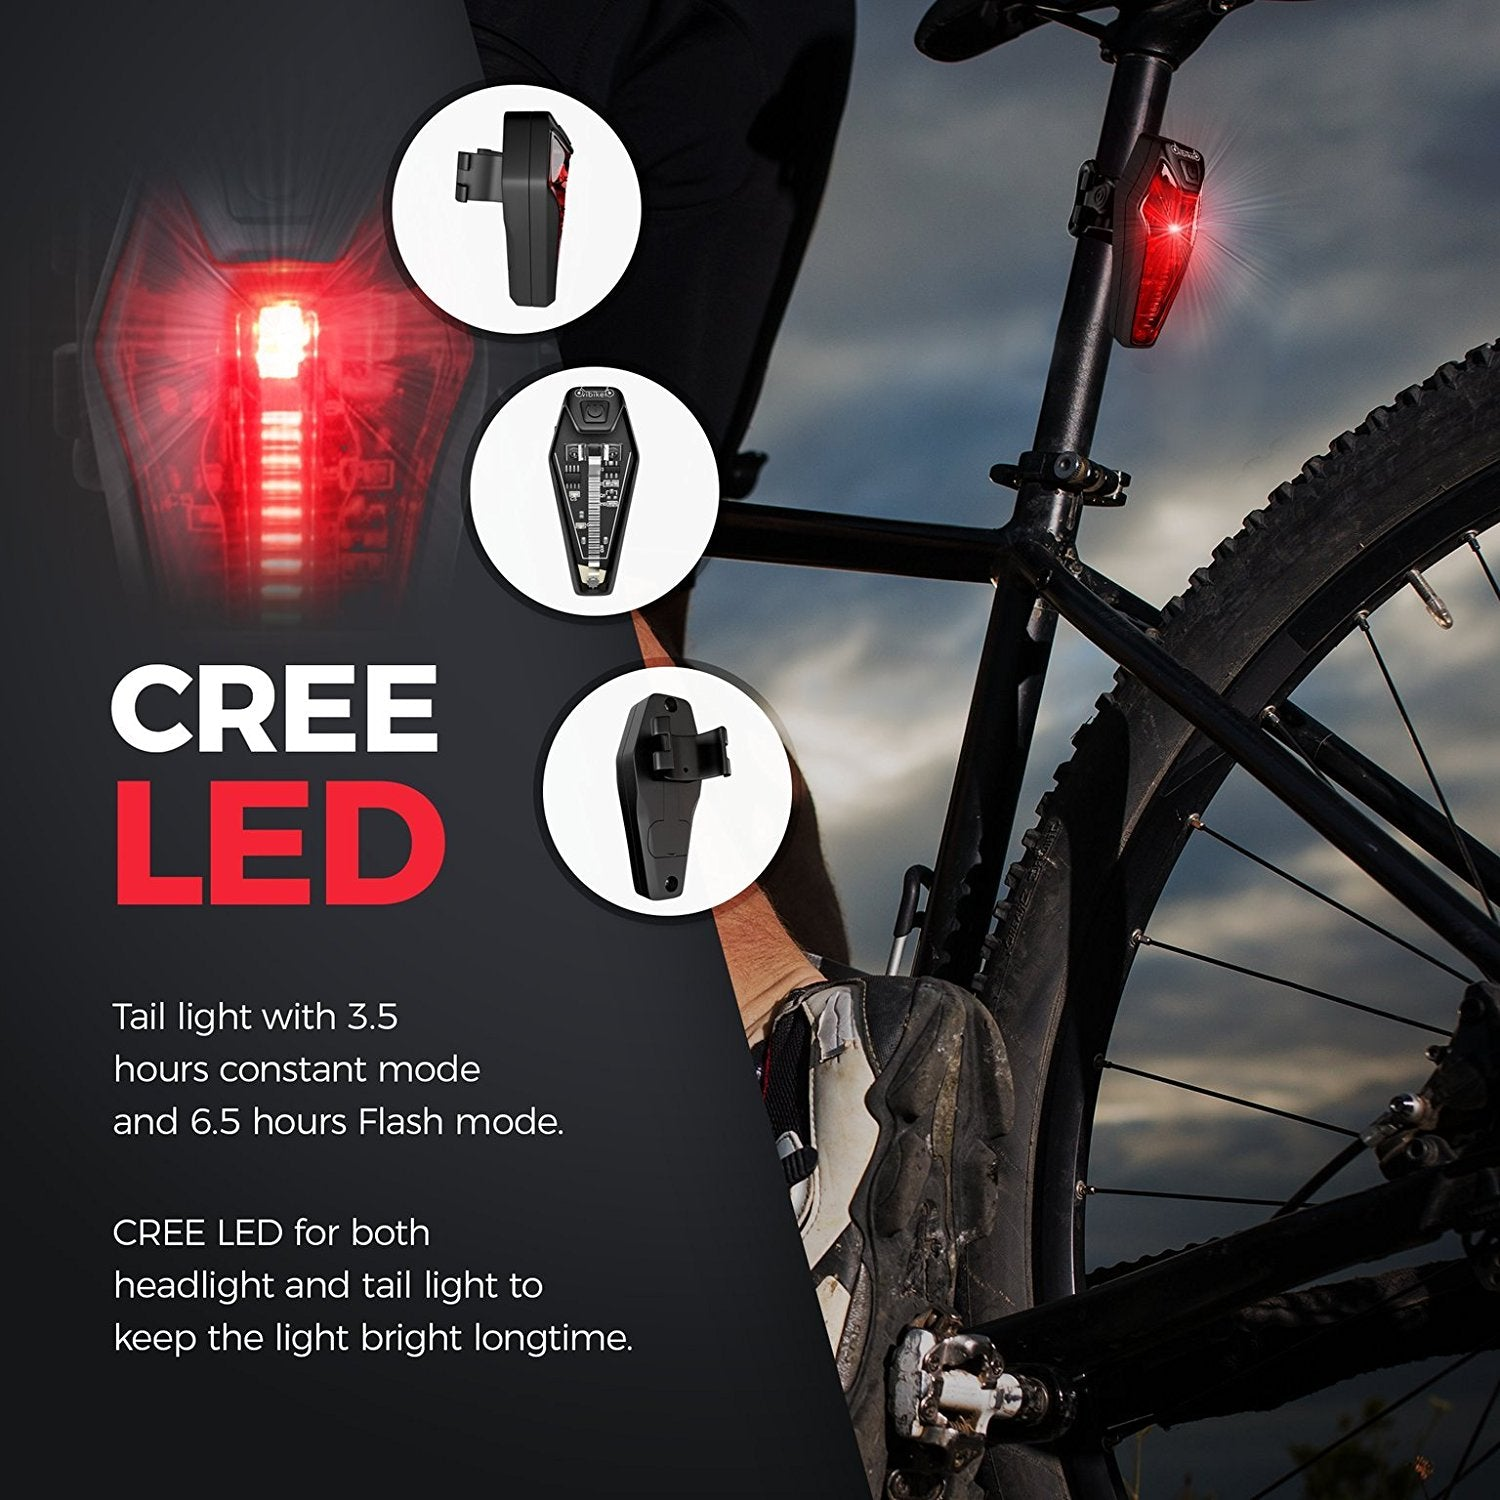 dp combinations set and headlight lights cycling bike led rear bicycle light rechargeable usb taillight battery lithium front